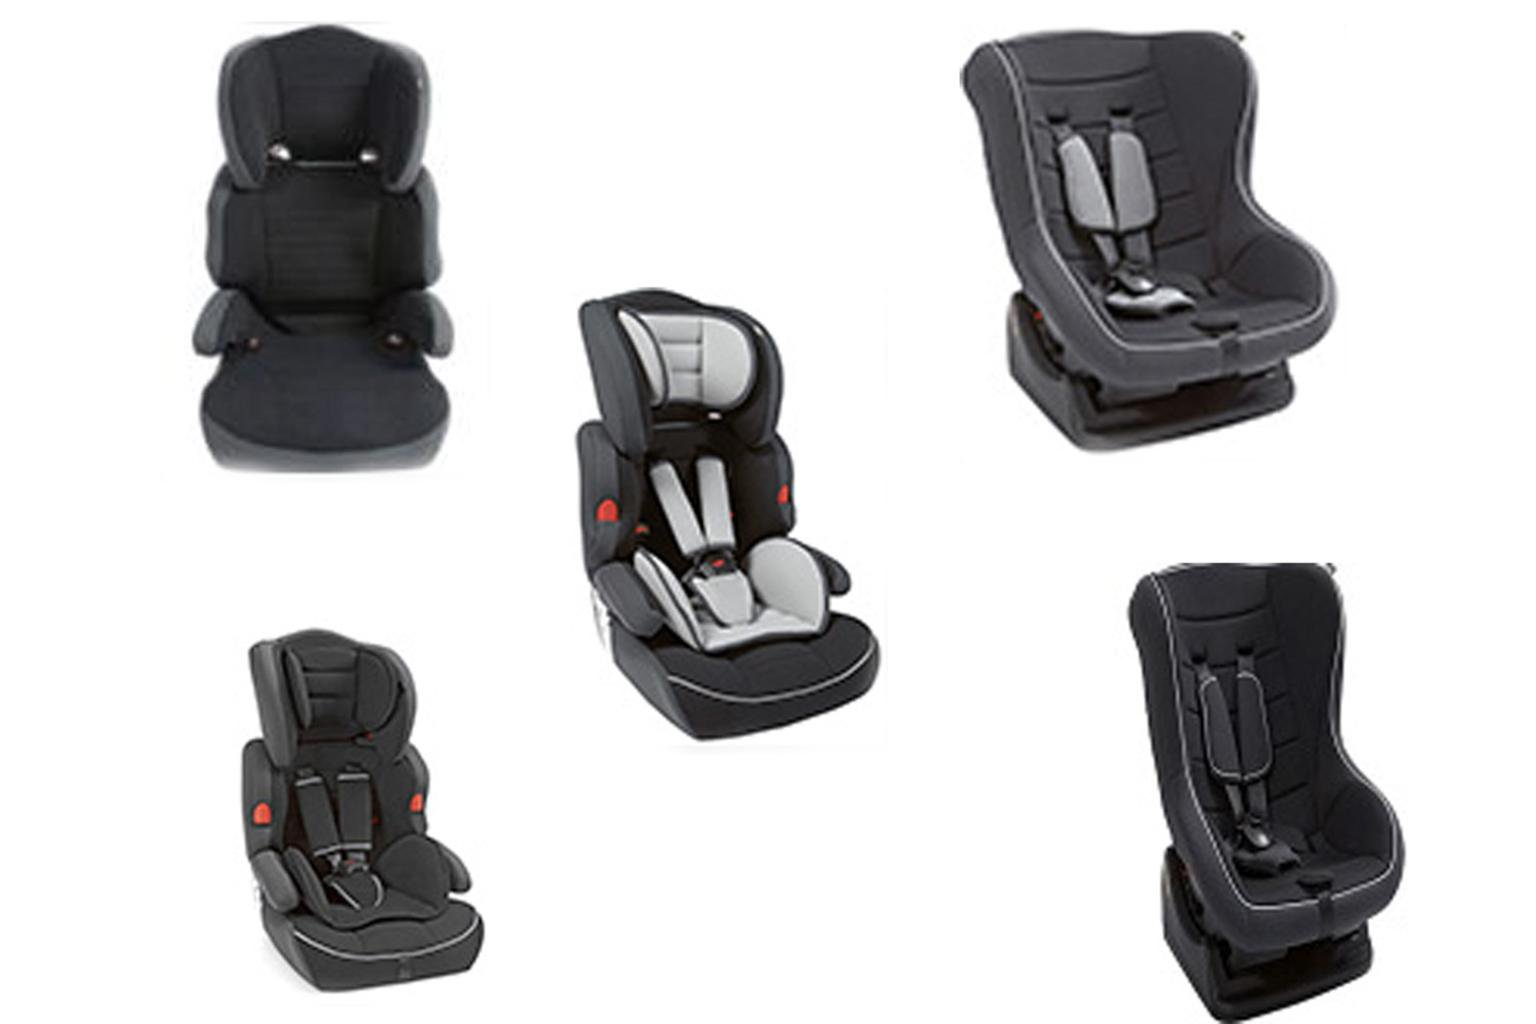 Argos recalls five child car seat models over safety fears